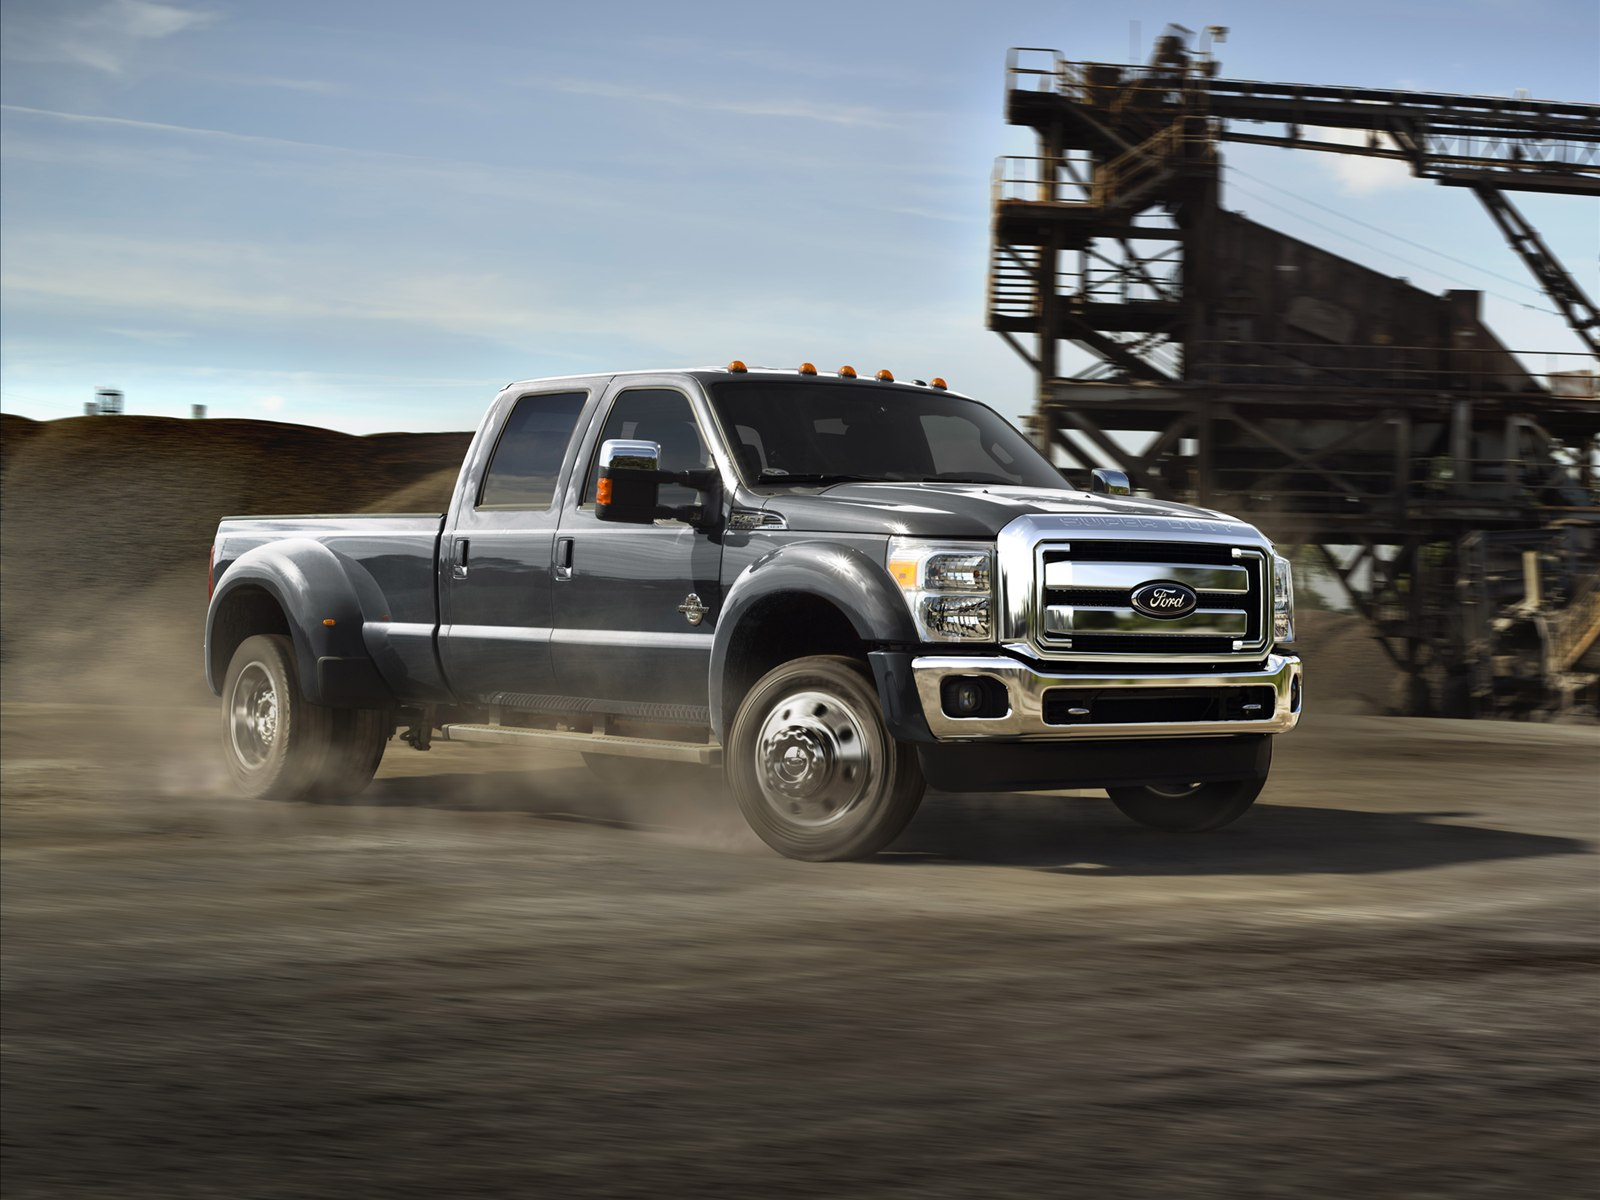 Ford F 250 Super Duty 2015 Exotic Car Wallpapers 08 of 24 Diesel 1600x1200